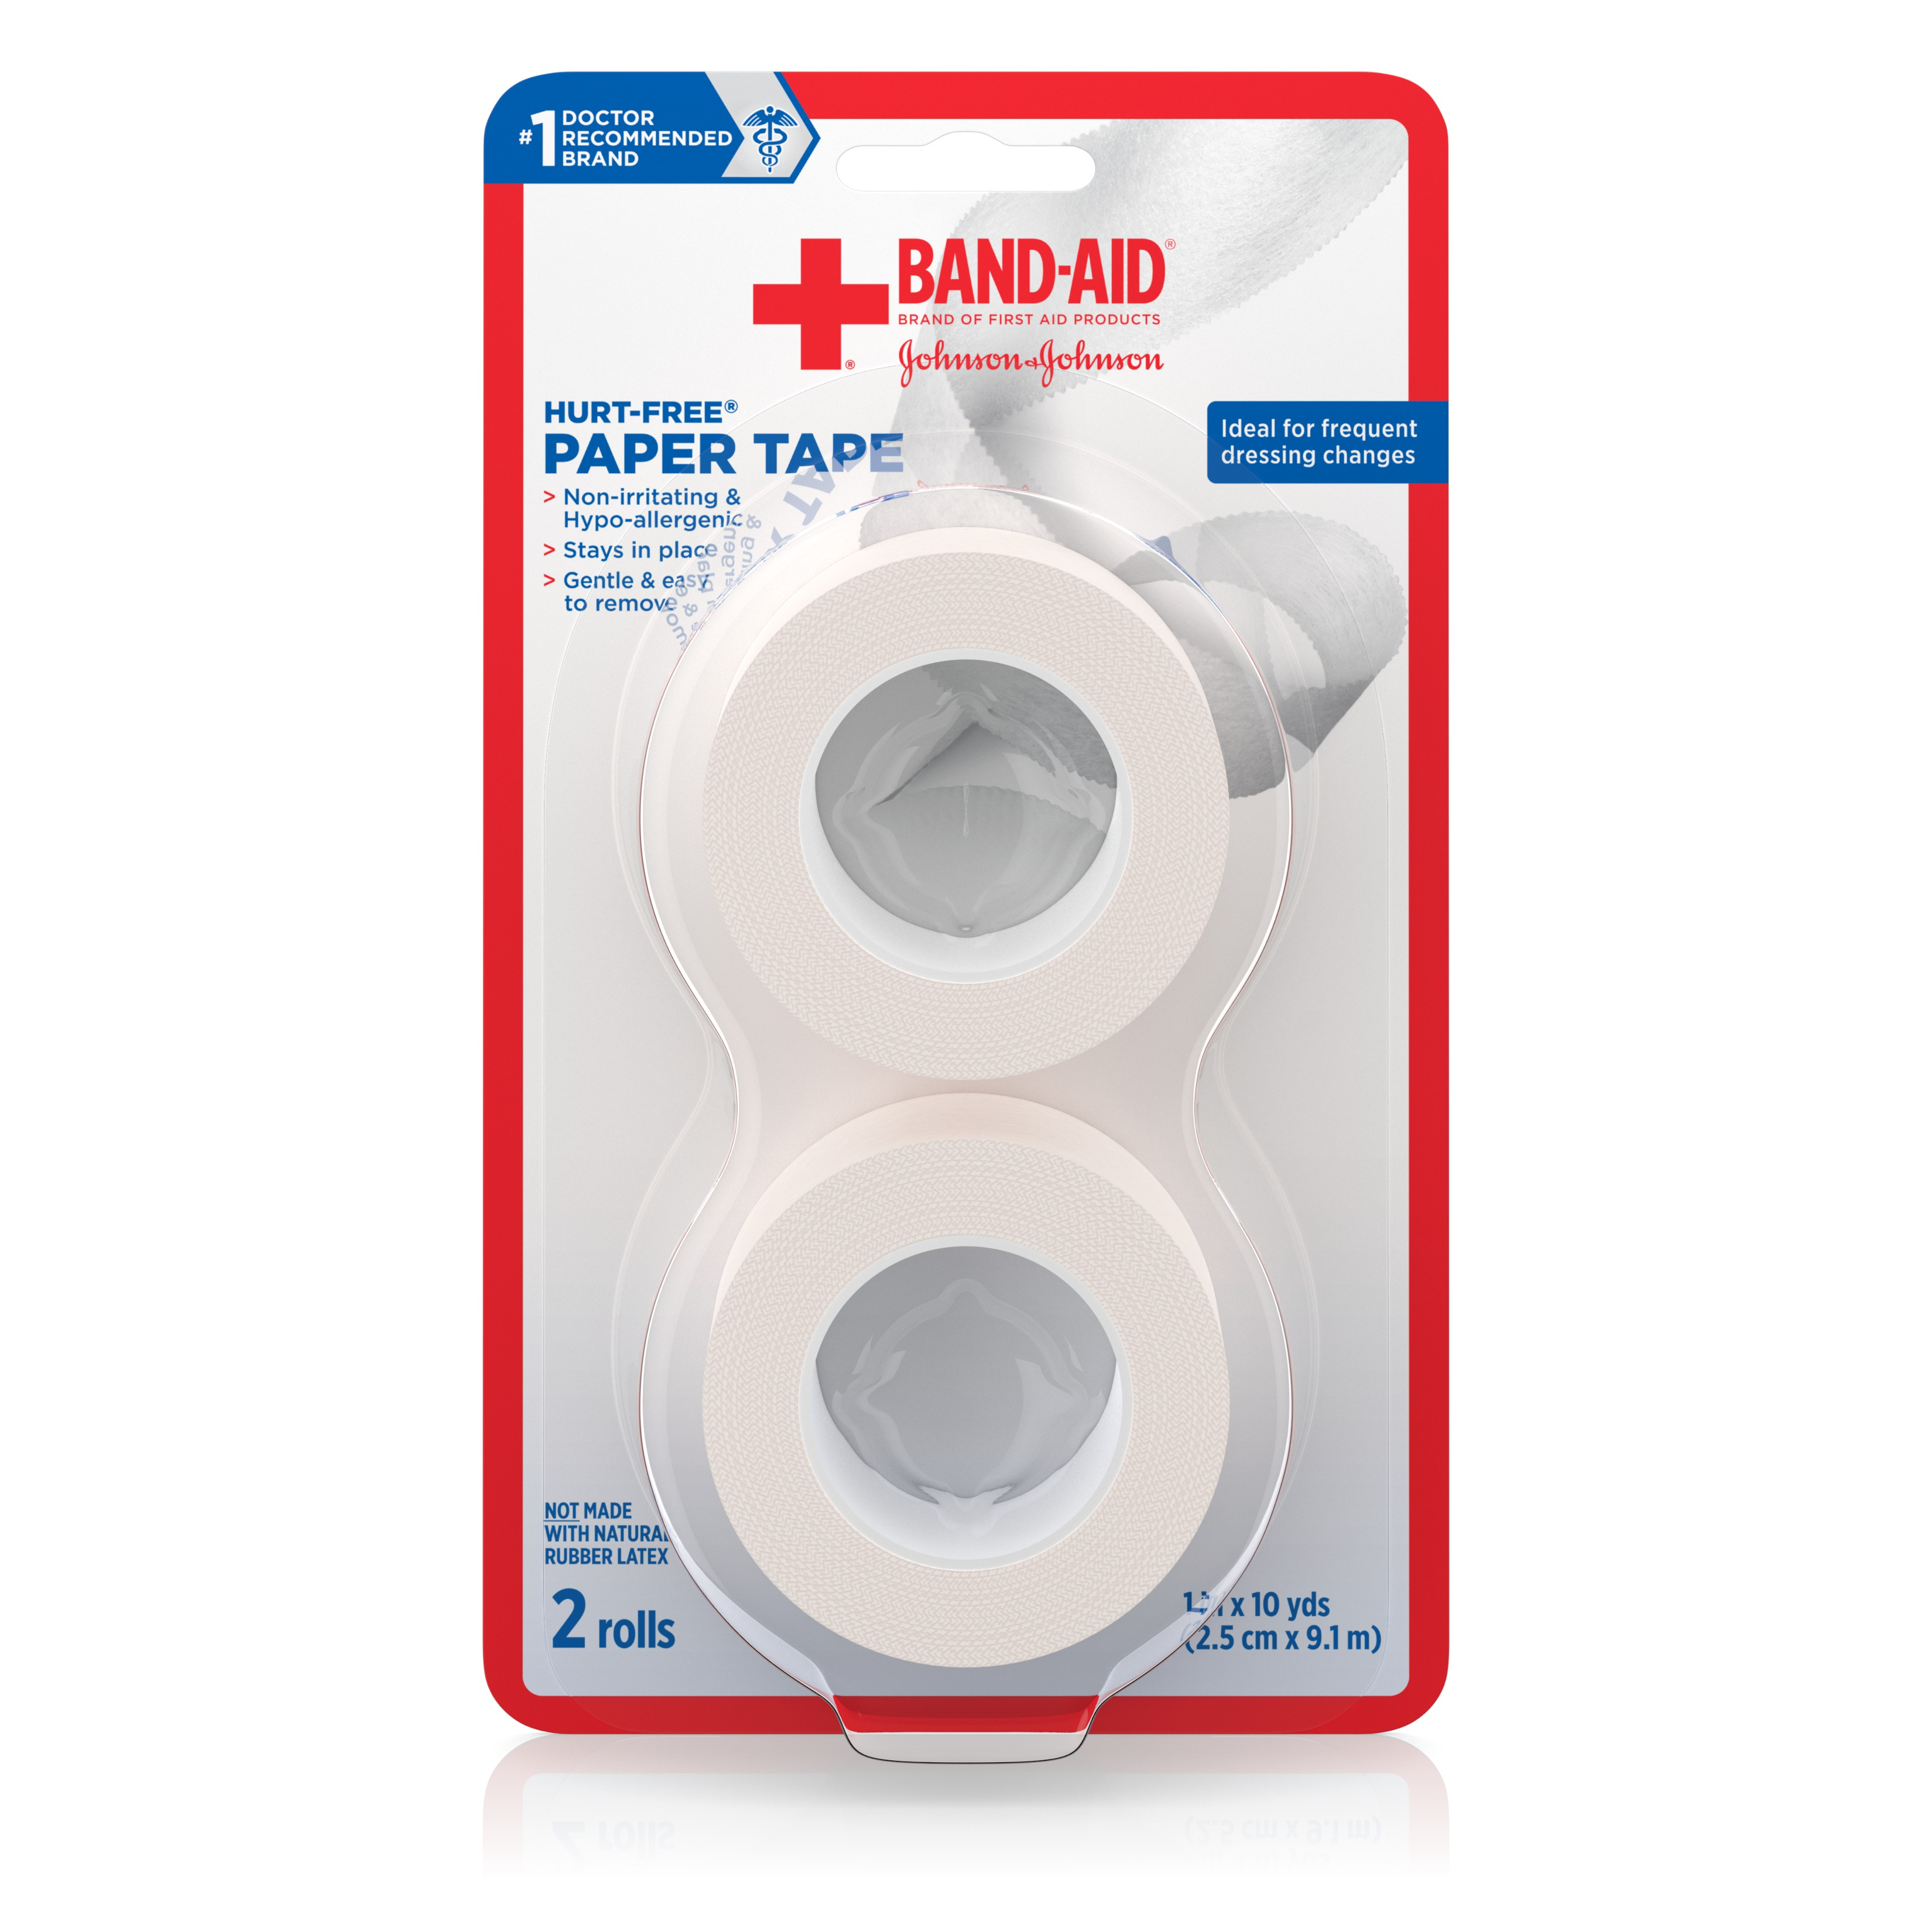 Band-Aid Brand Of First Aid Products Hurt-Free Paper Tape, 1 Inch By 10 Yards, 2 Count